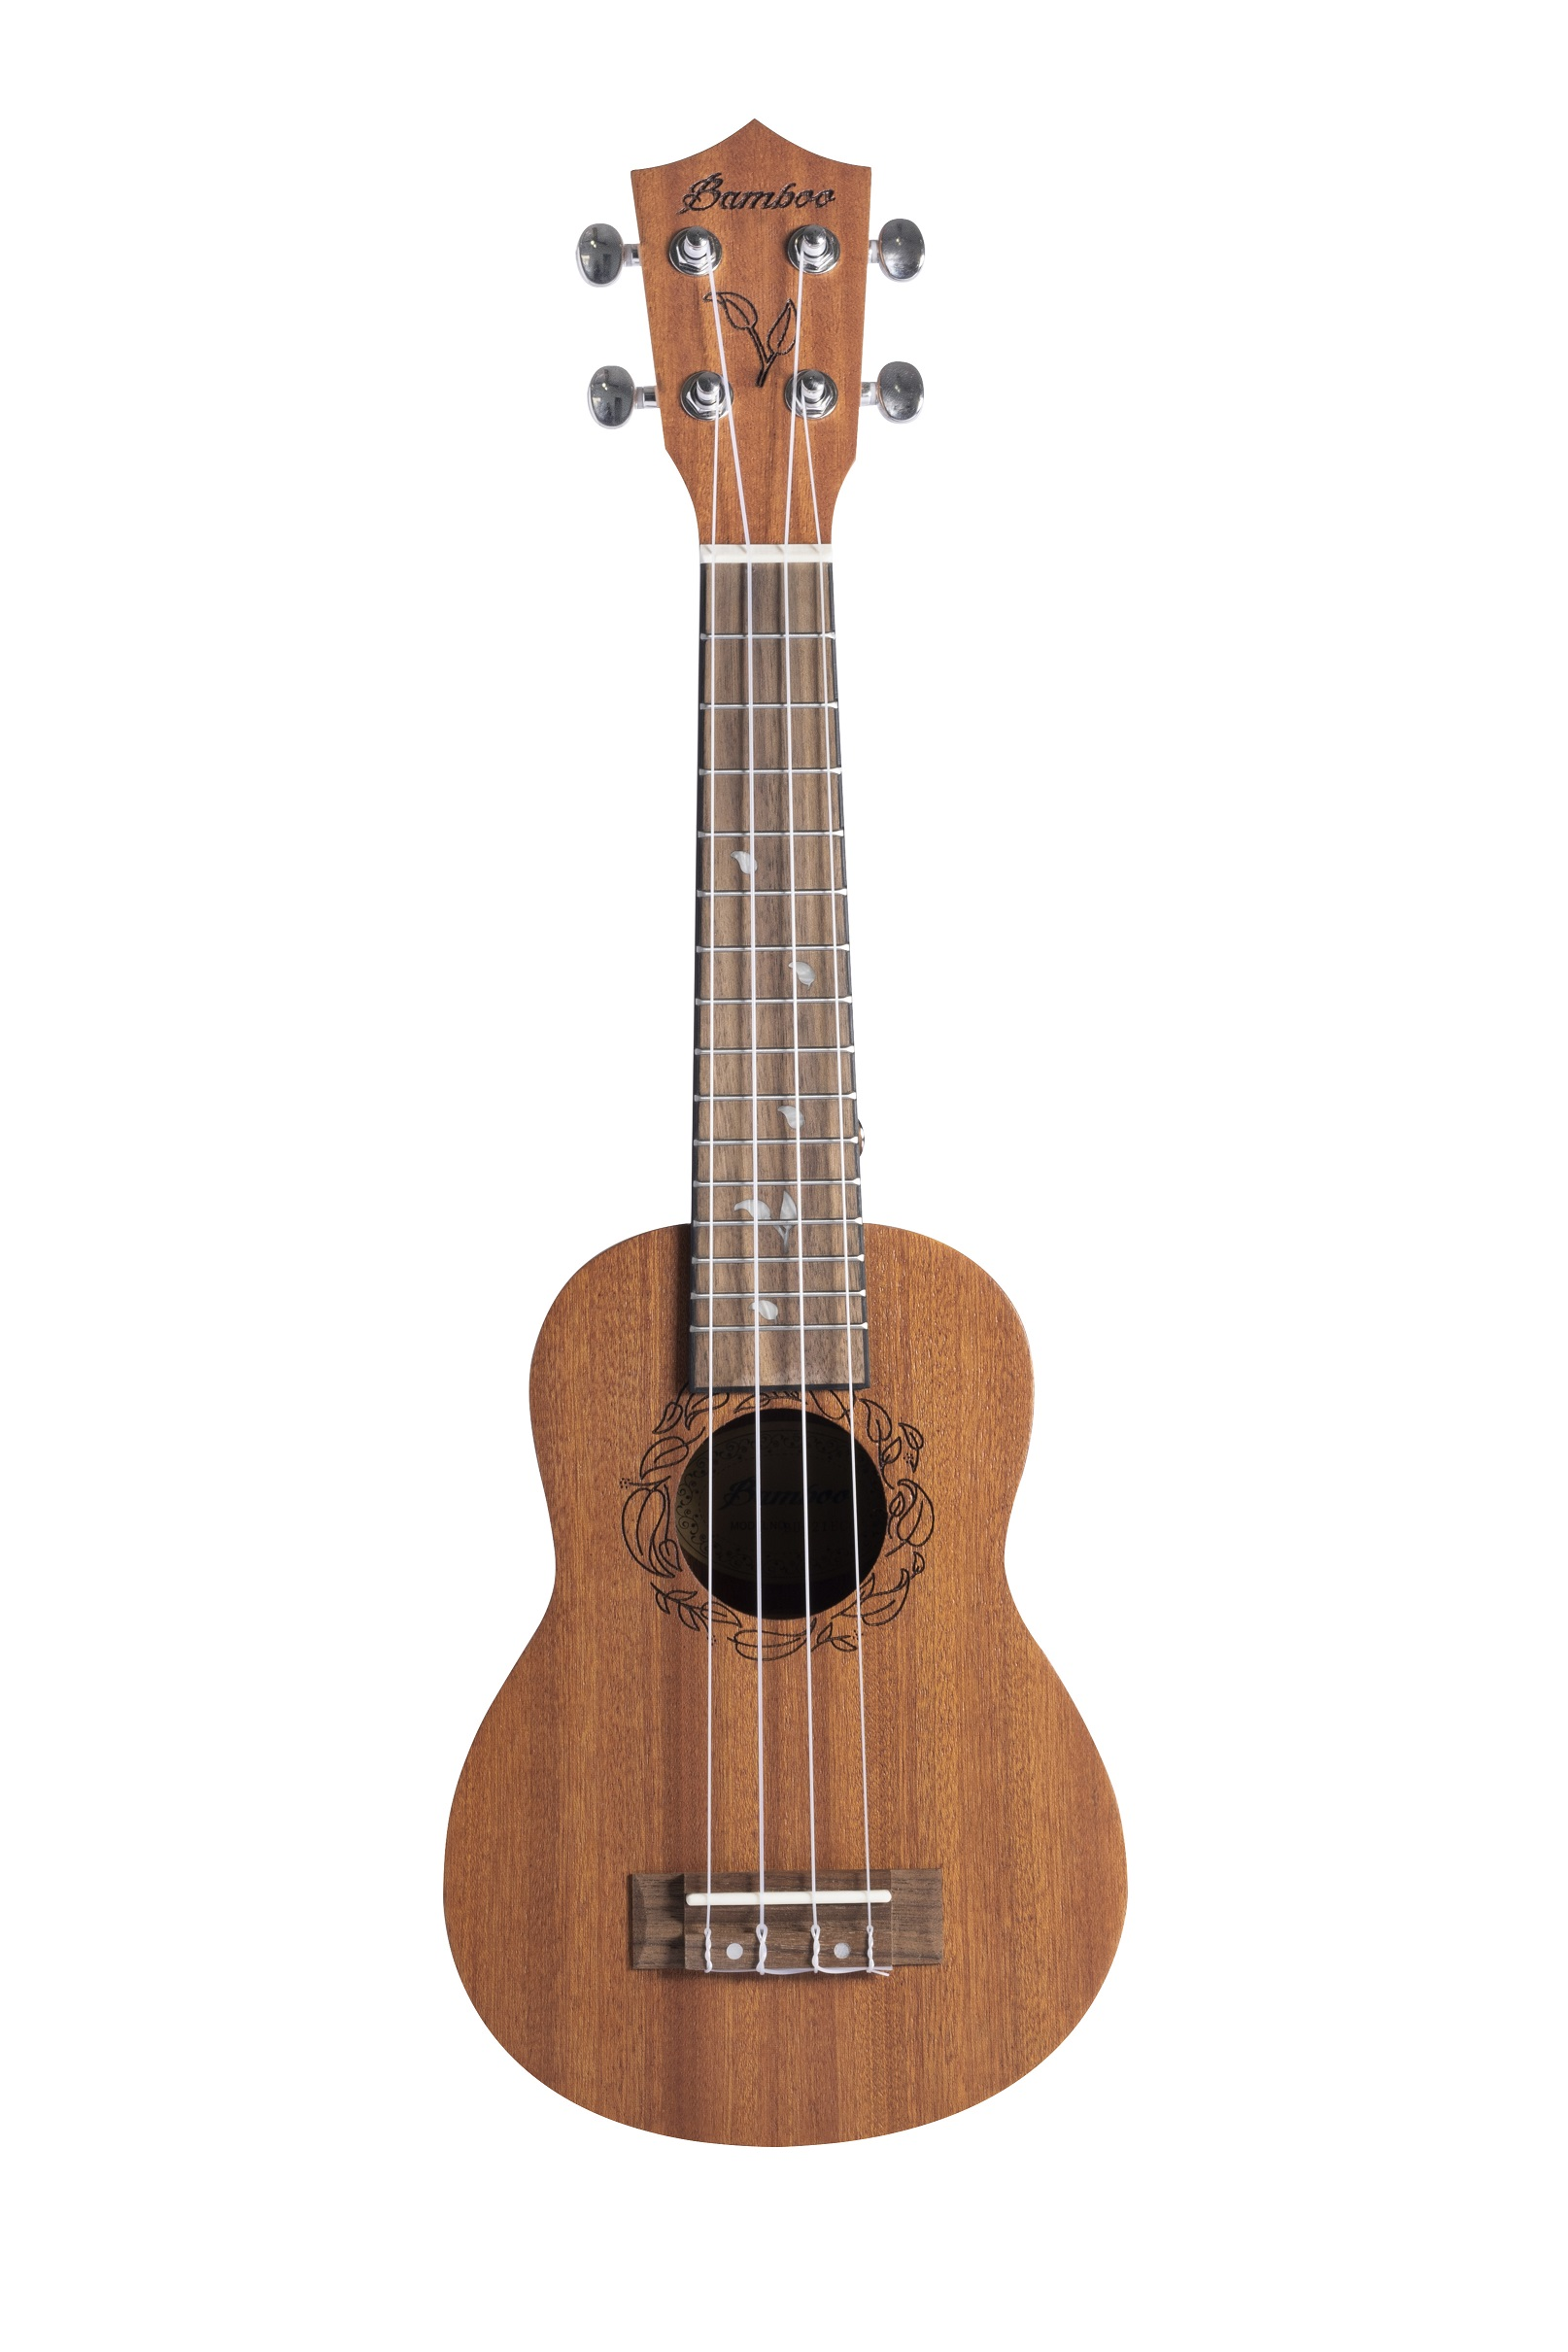 BAMBOO Eco Tenor Ukulele Earth Series Acoustic | For Beginners and Professionals | Sapele & Walnut | With Gig Bag (New Generation)